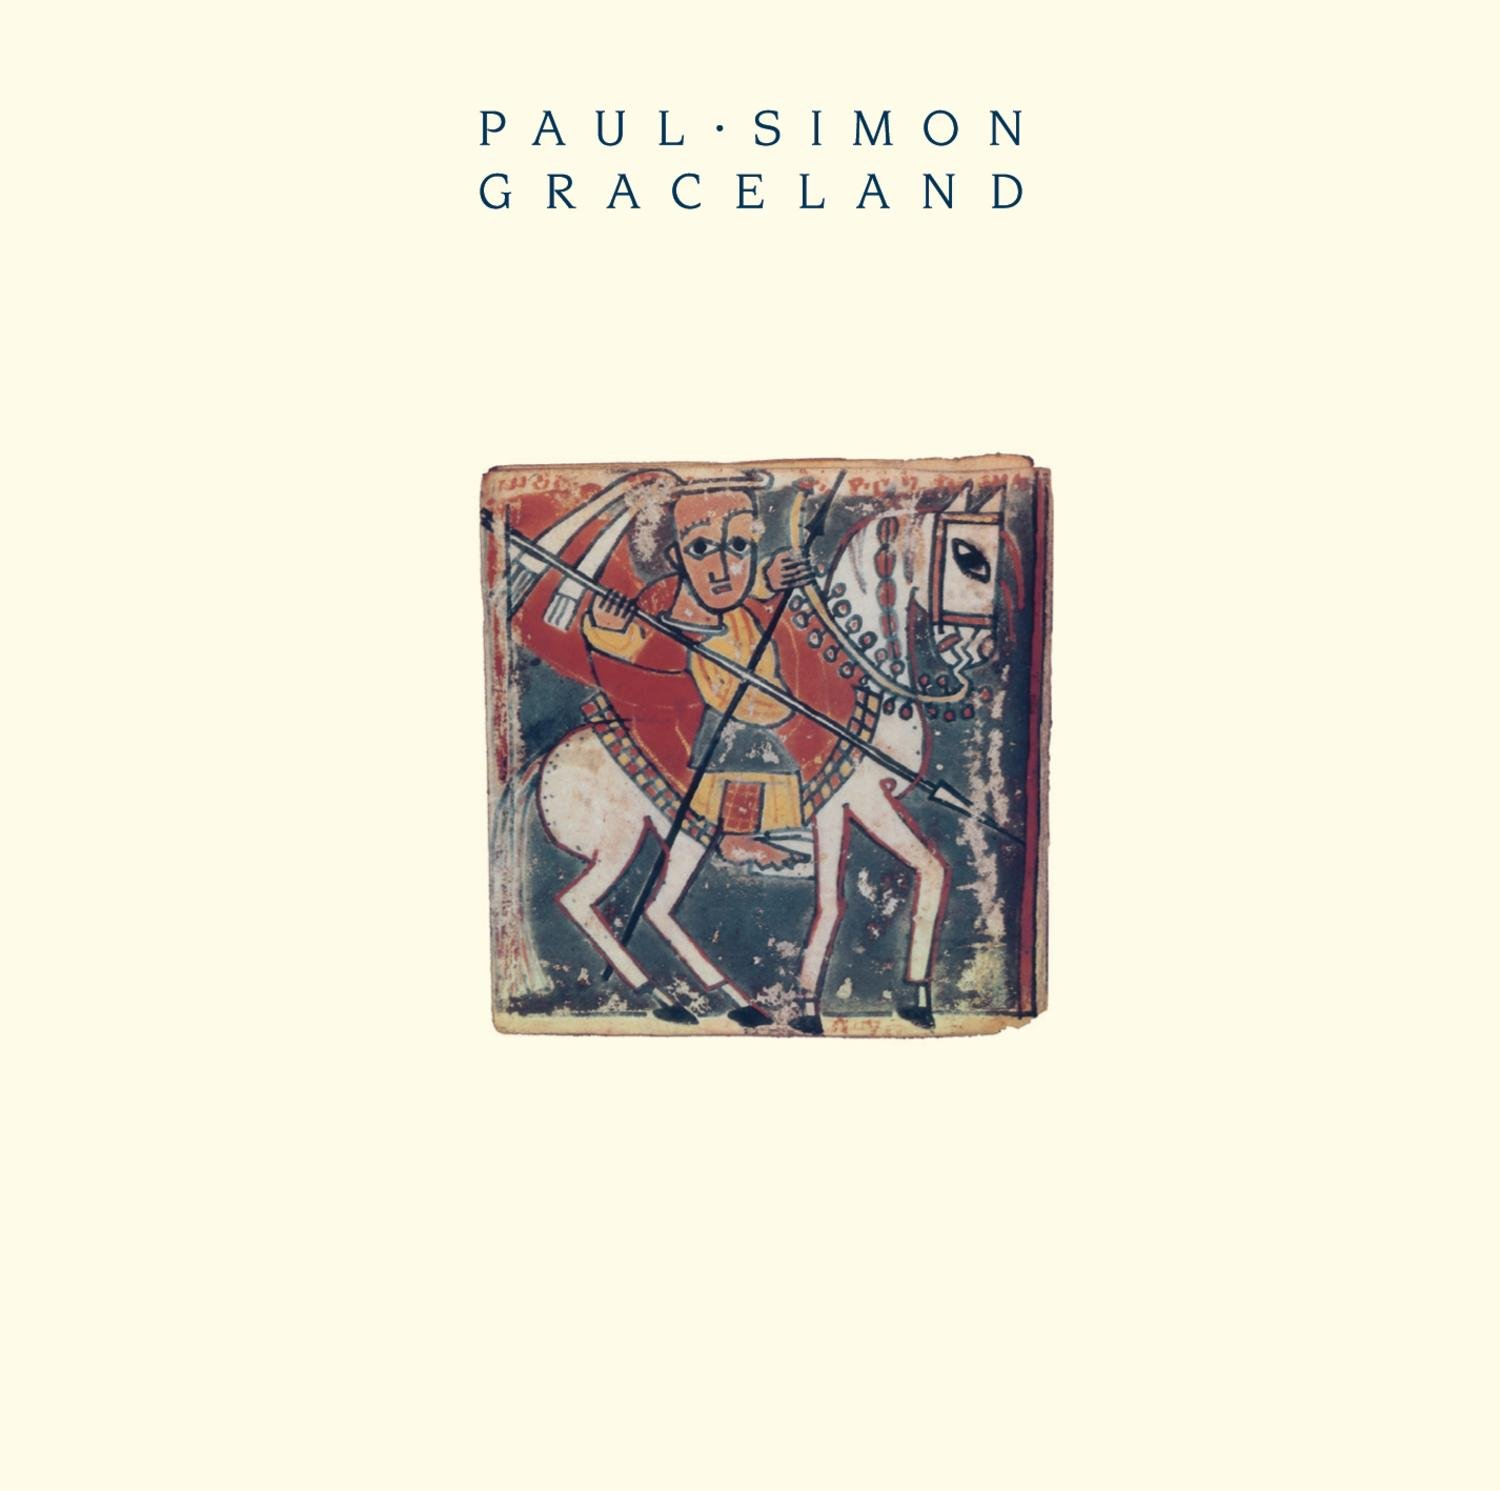 Art for Diamonds On The Soles Of Her Shoes by Paul Simon